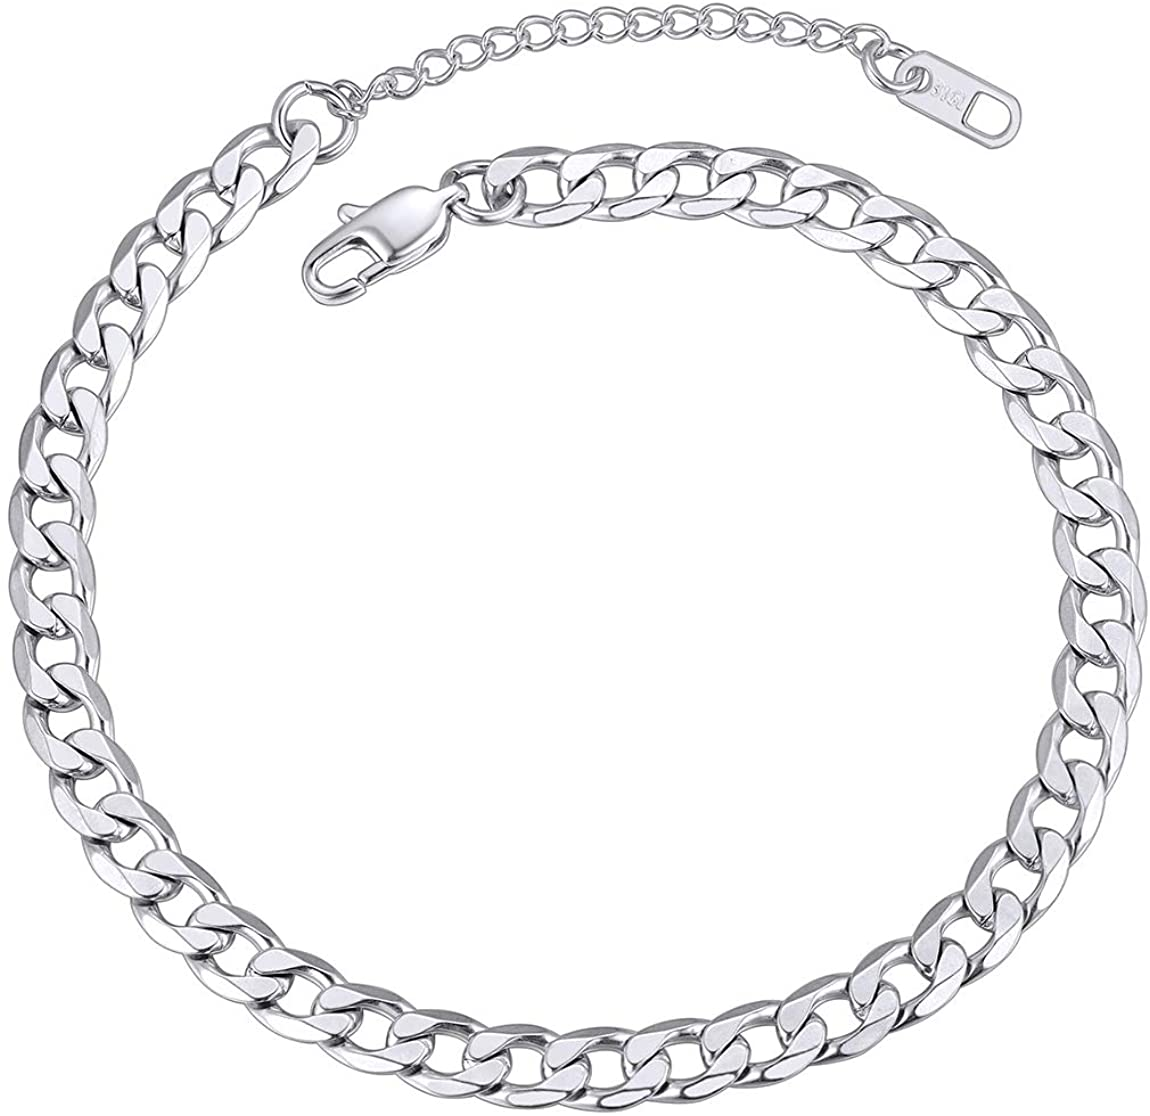 ChainsPro Resizable Anklet Chain for Women Men, Figaro/Wheat/Twist Rope/Cuban Foot Bracelet-Strong with Good Clasp-18K Gold Plated(Send Gift Box)